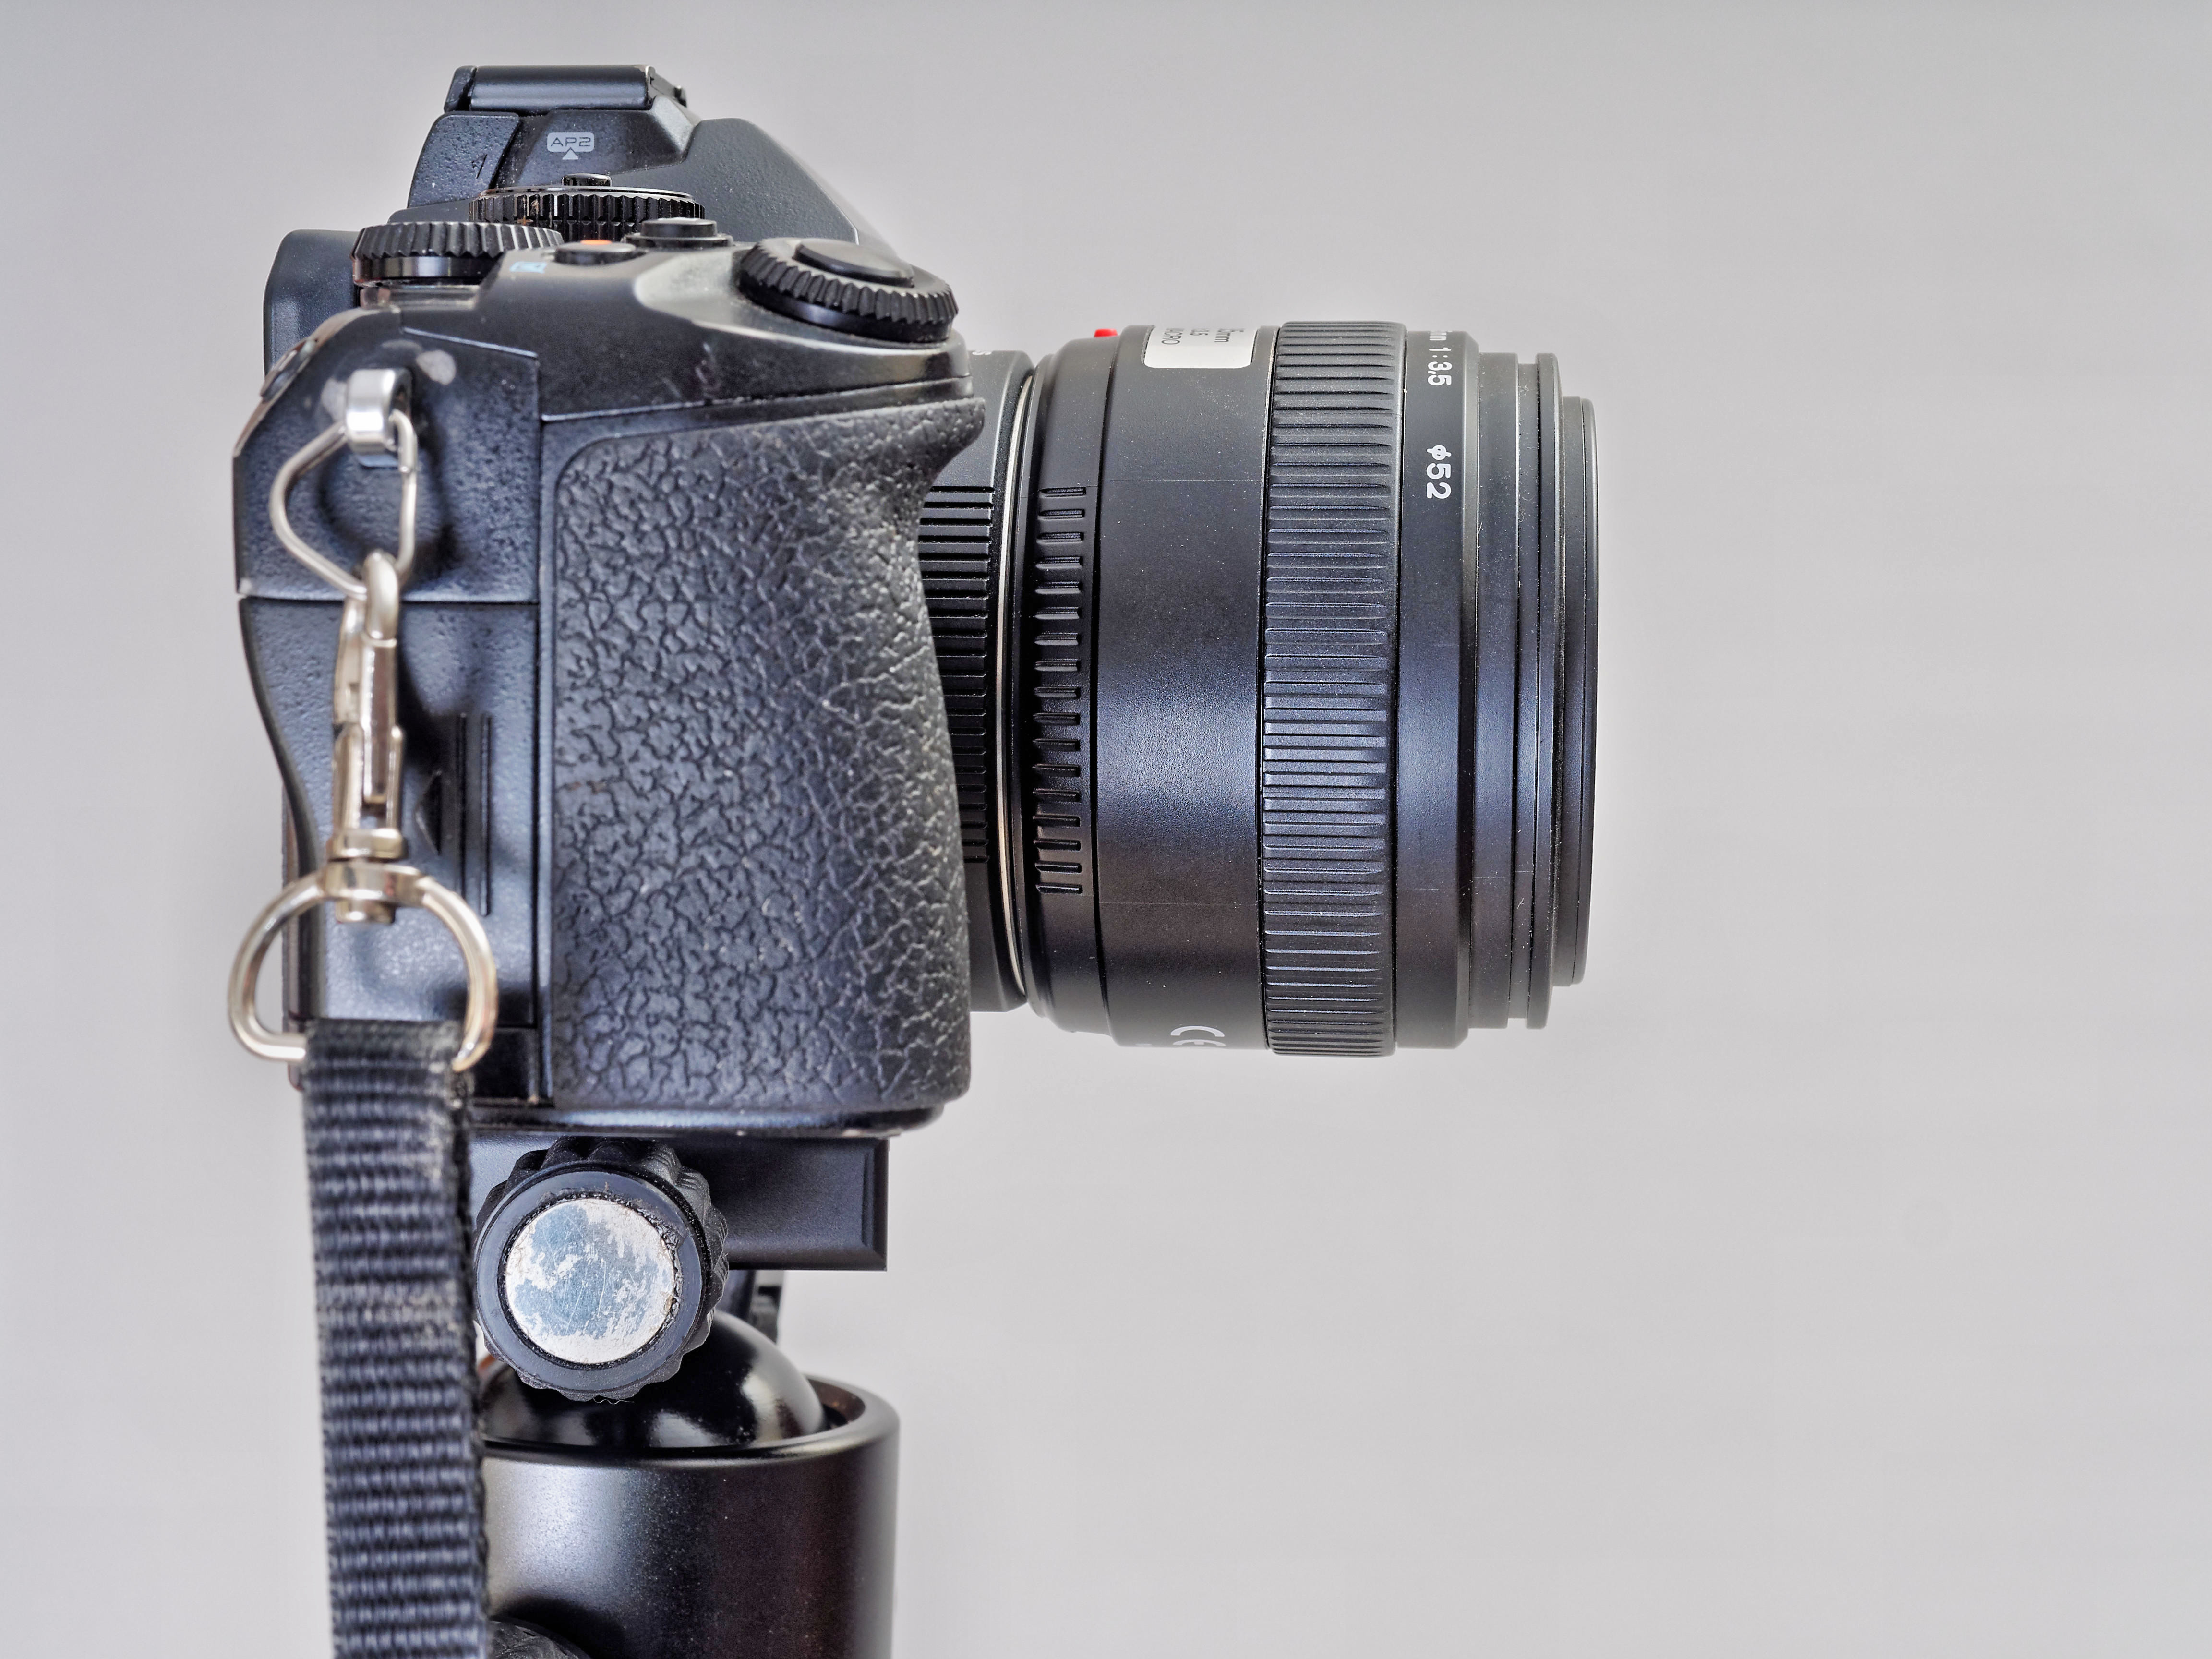 This should be E-M1-Z35-2.jpeg.  Is it missing?